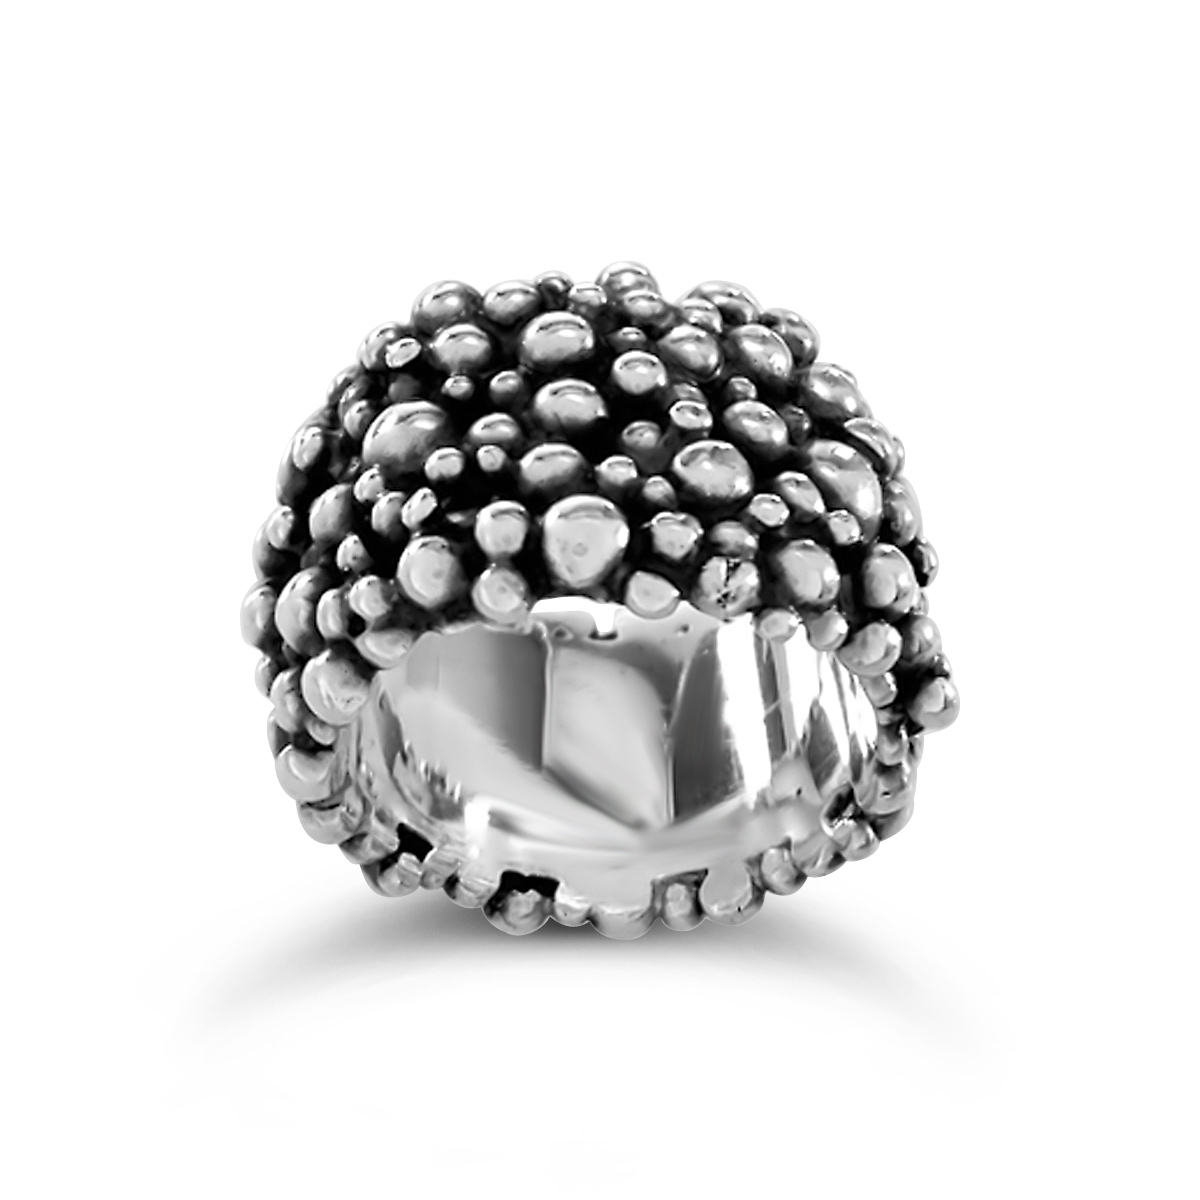 Molecule eternity ring oxidised silver 15mm wide